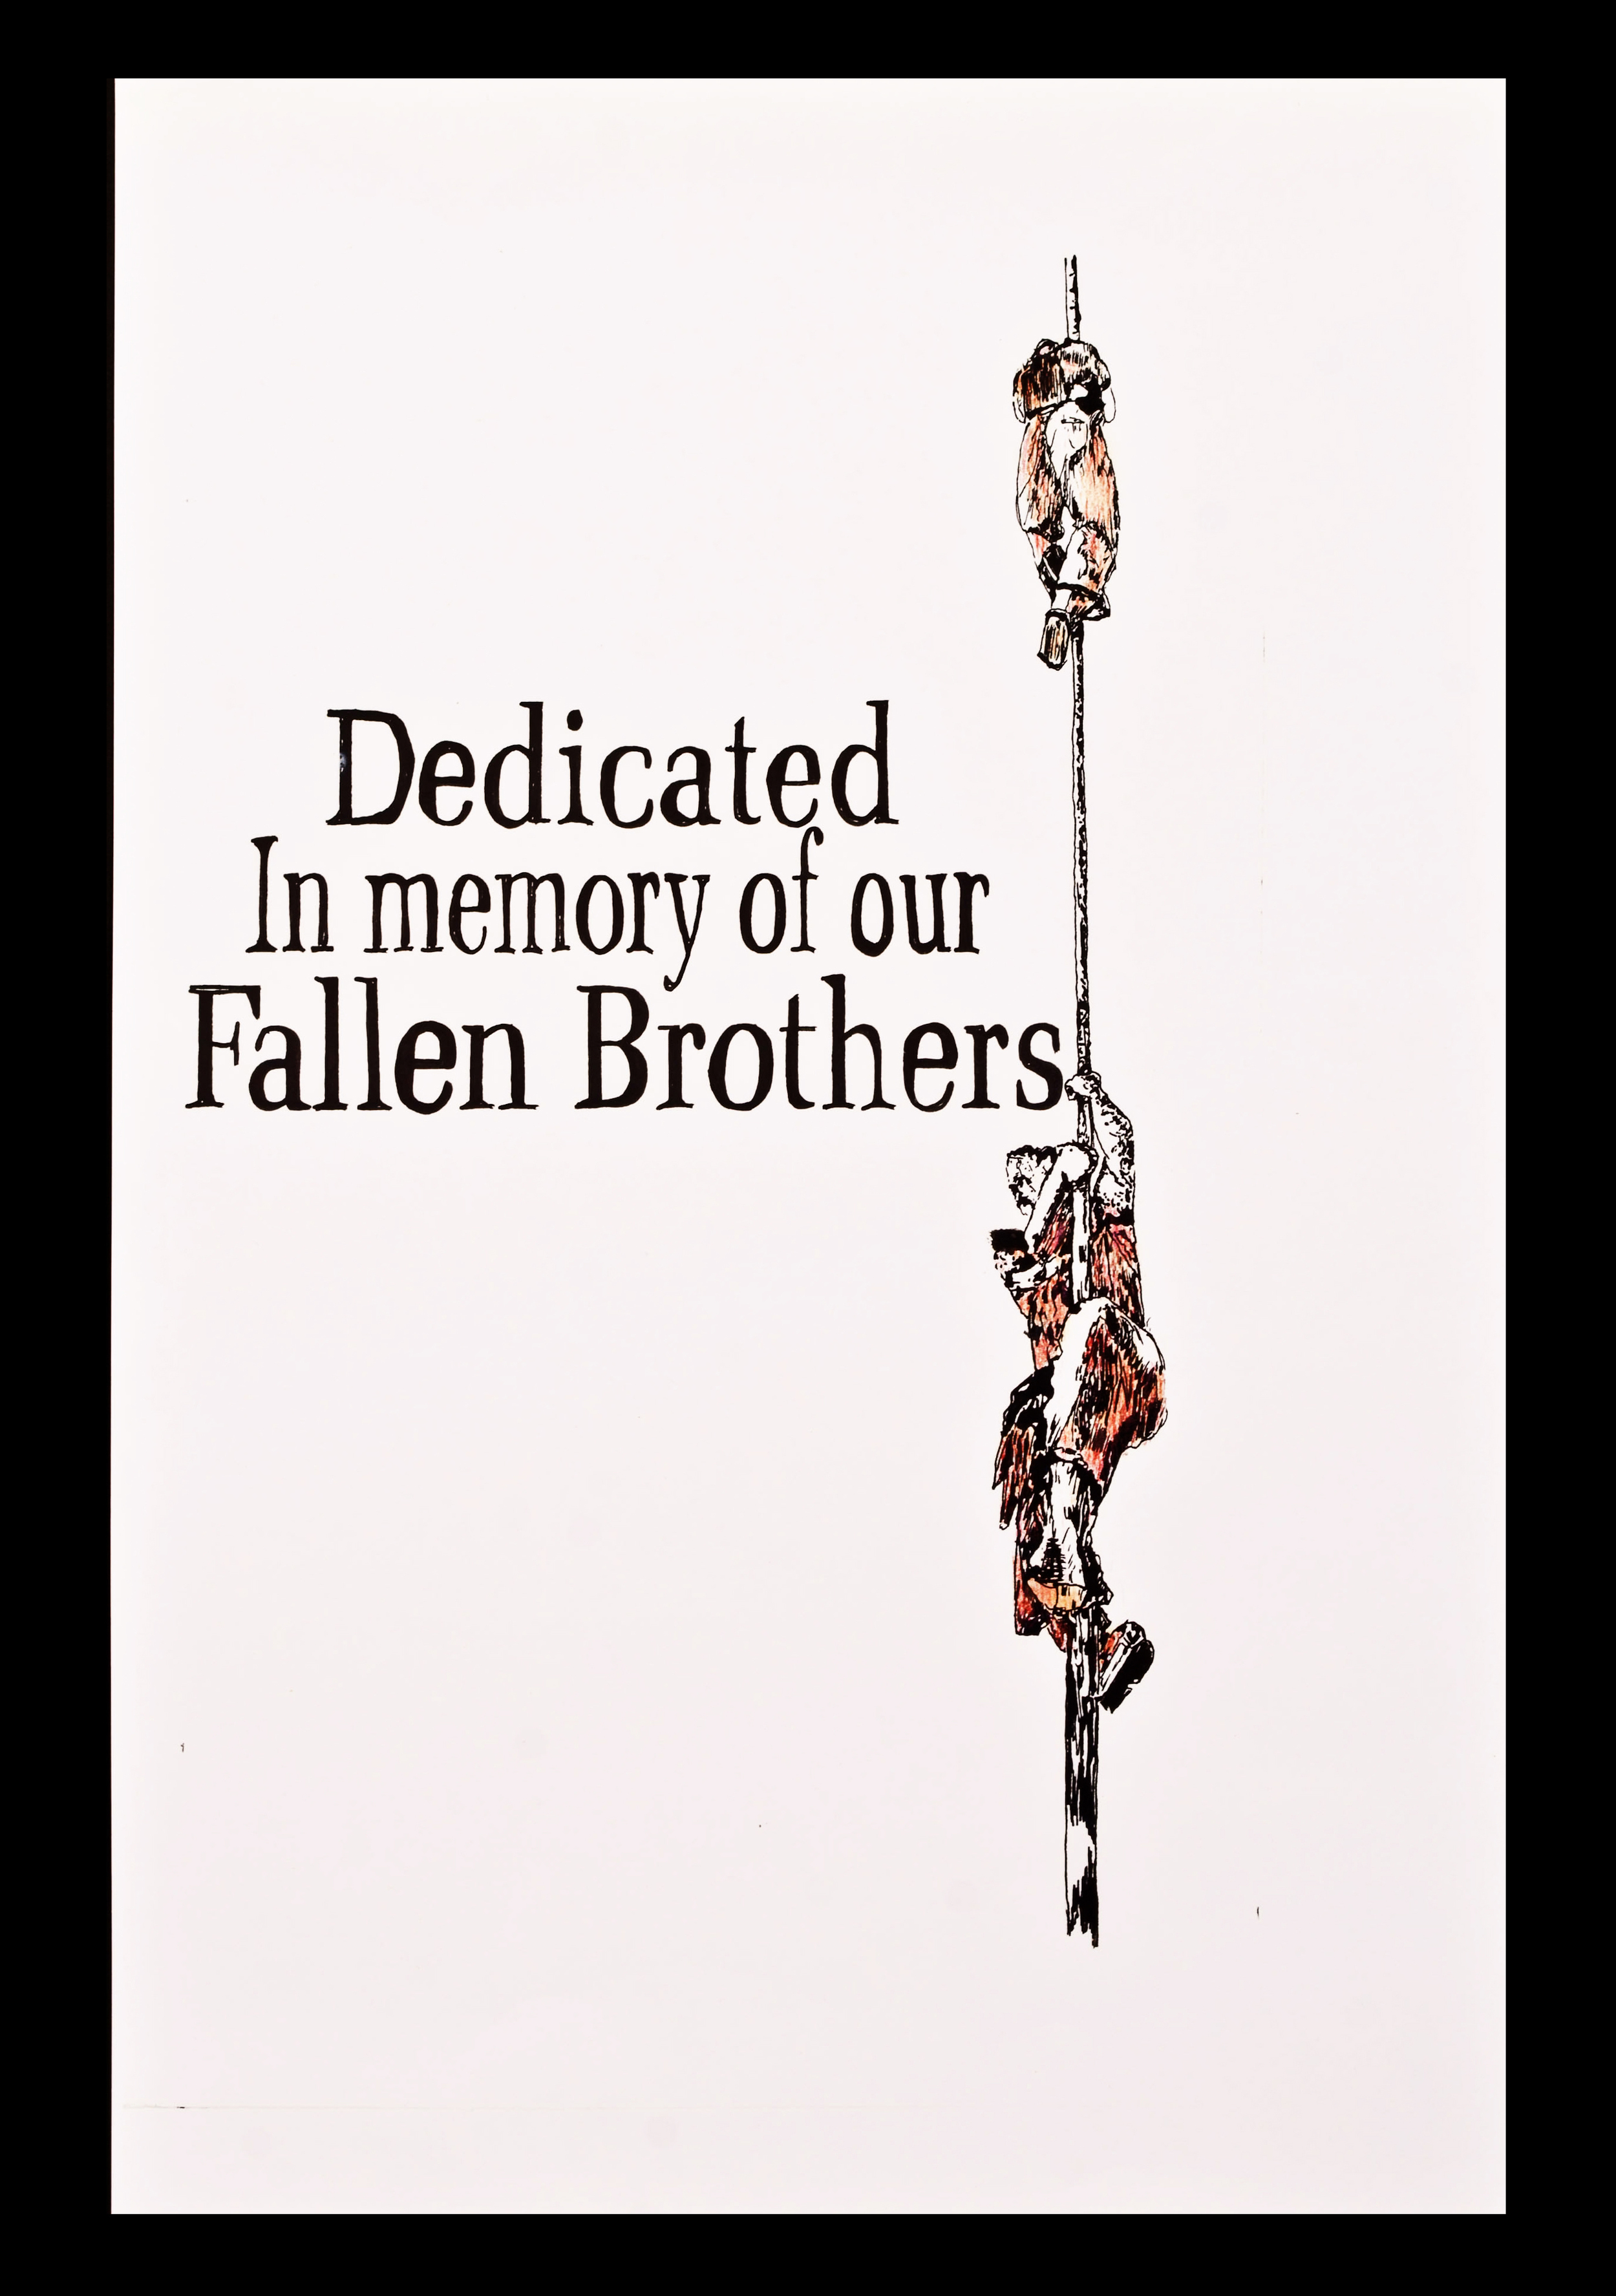 FALLEN BROTHERS